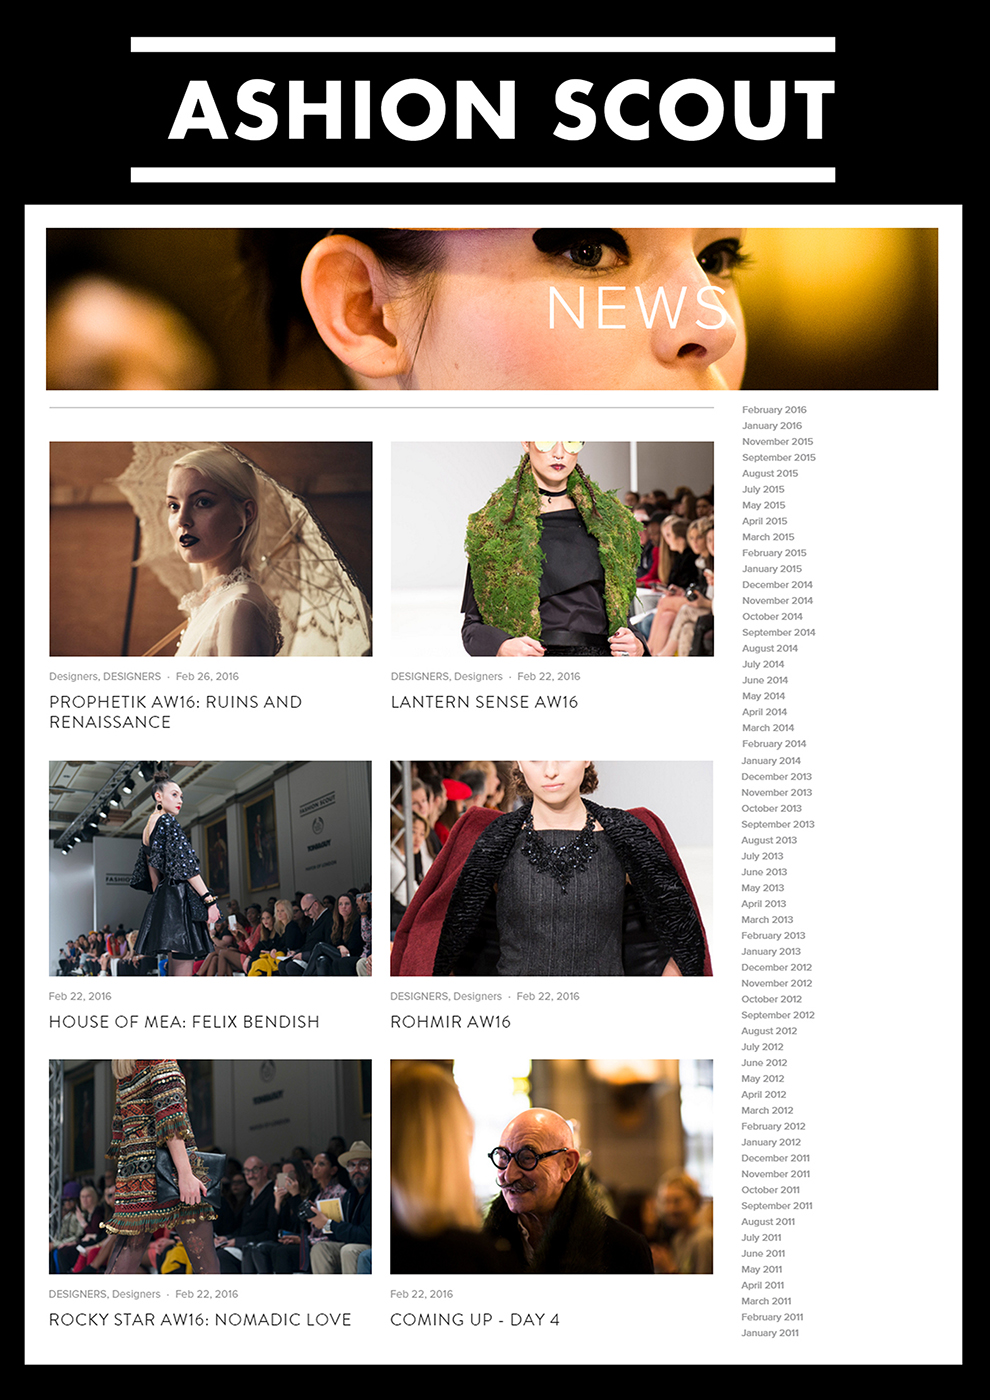 FASHION SCOUT HOMEPAGE